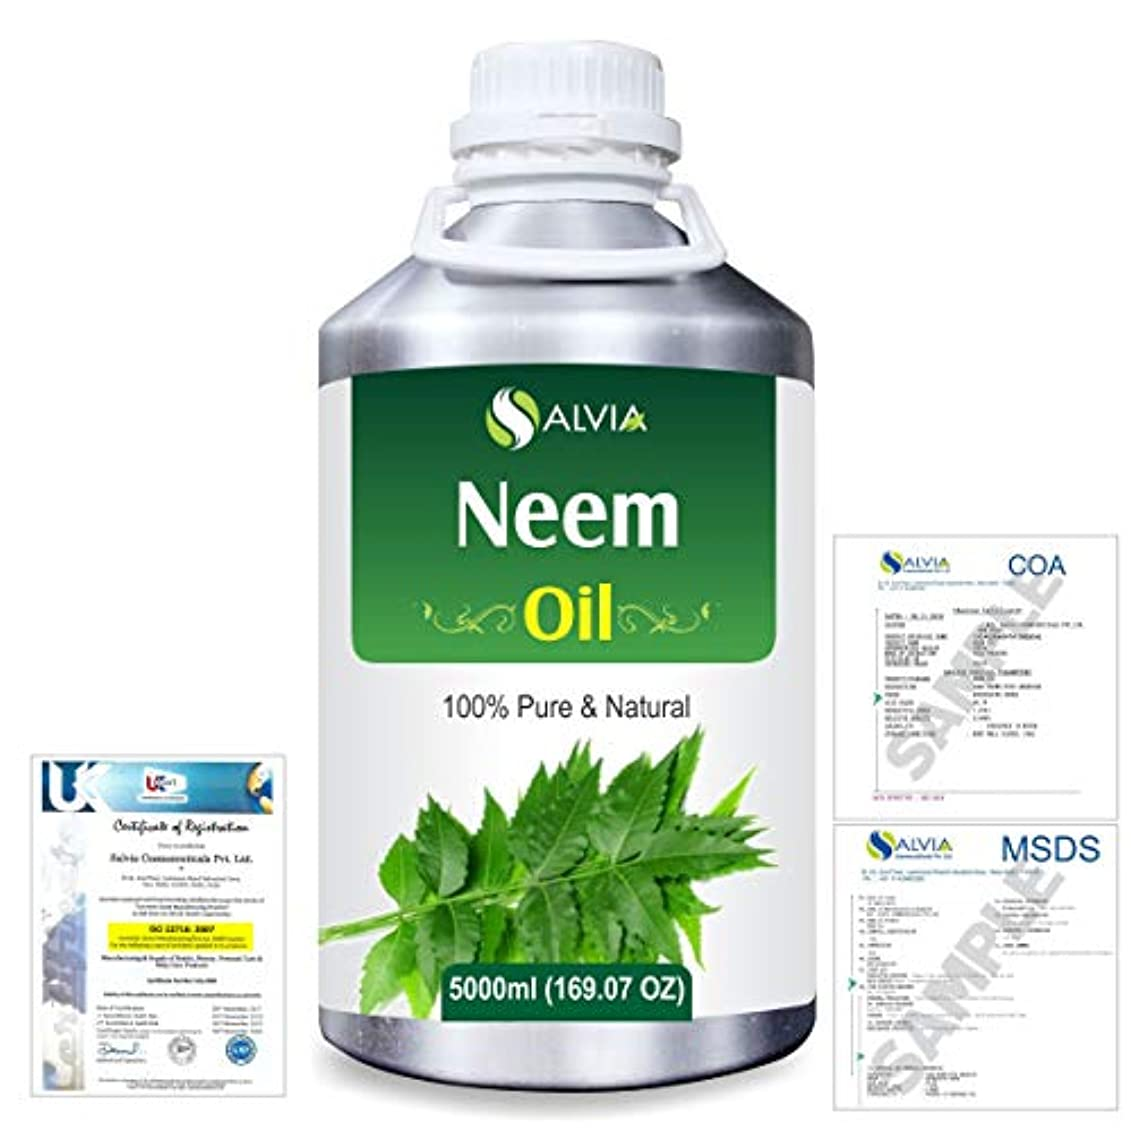 彼自身悲観主義者個人Neem (Azadirachta indica) 100% Natural Pure Essential Oil 5000ml/169fl.oz.